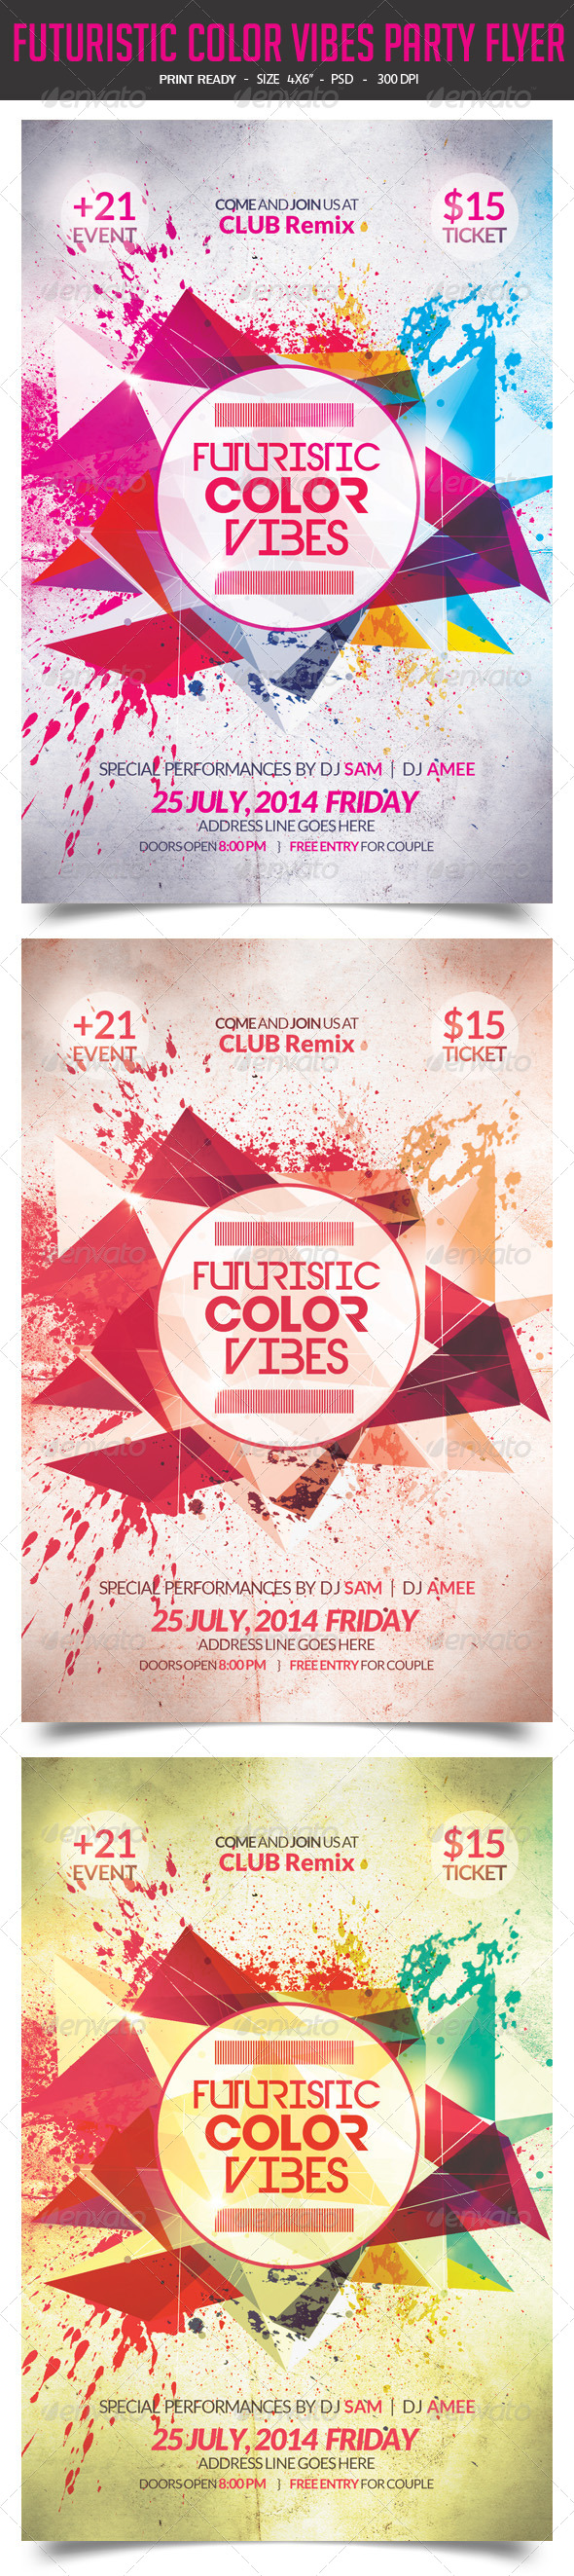 GraphicRiver Futuristic Color Vibes Party Flyer 8168341